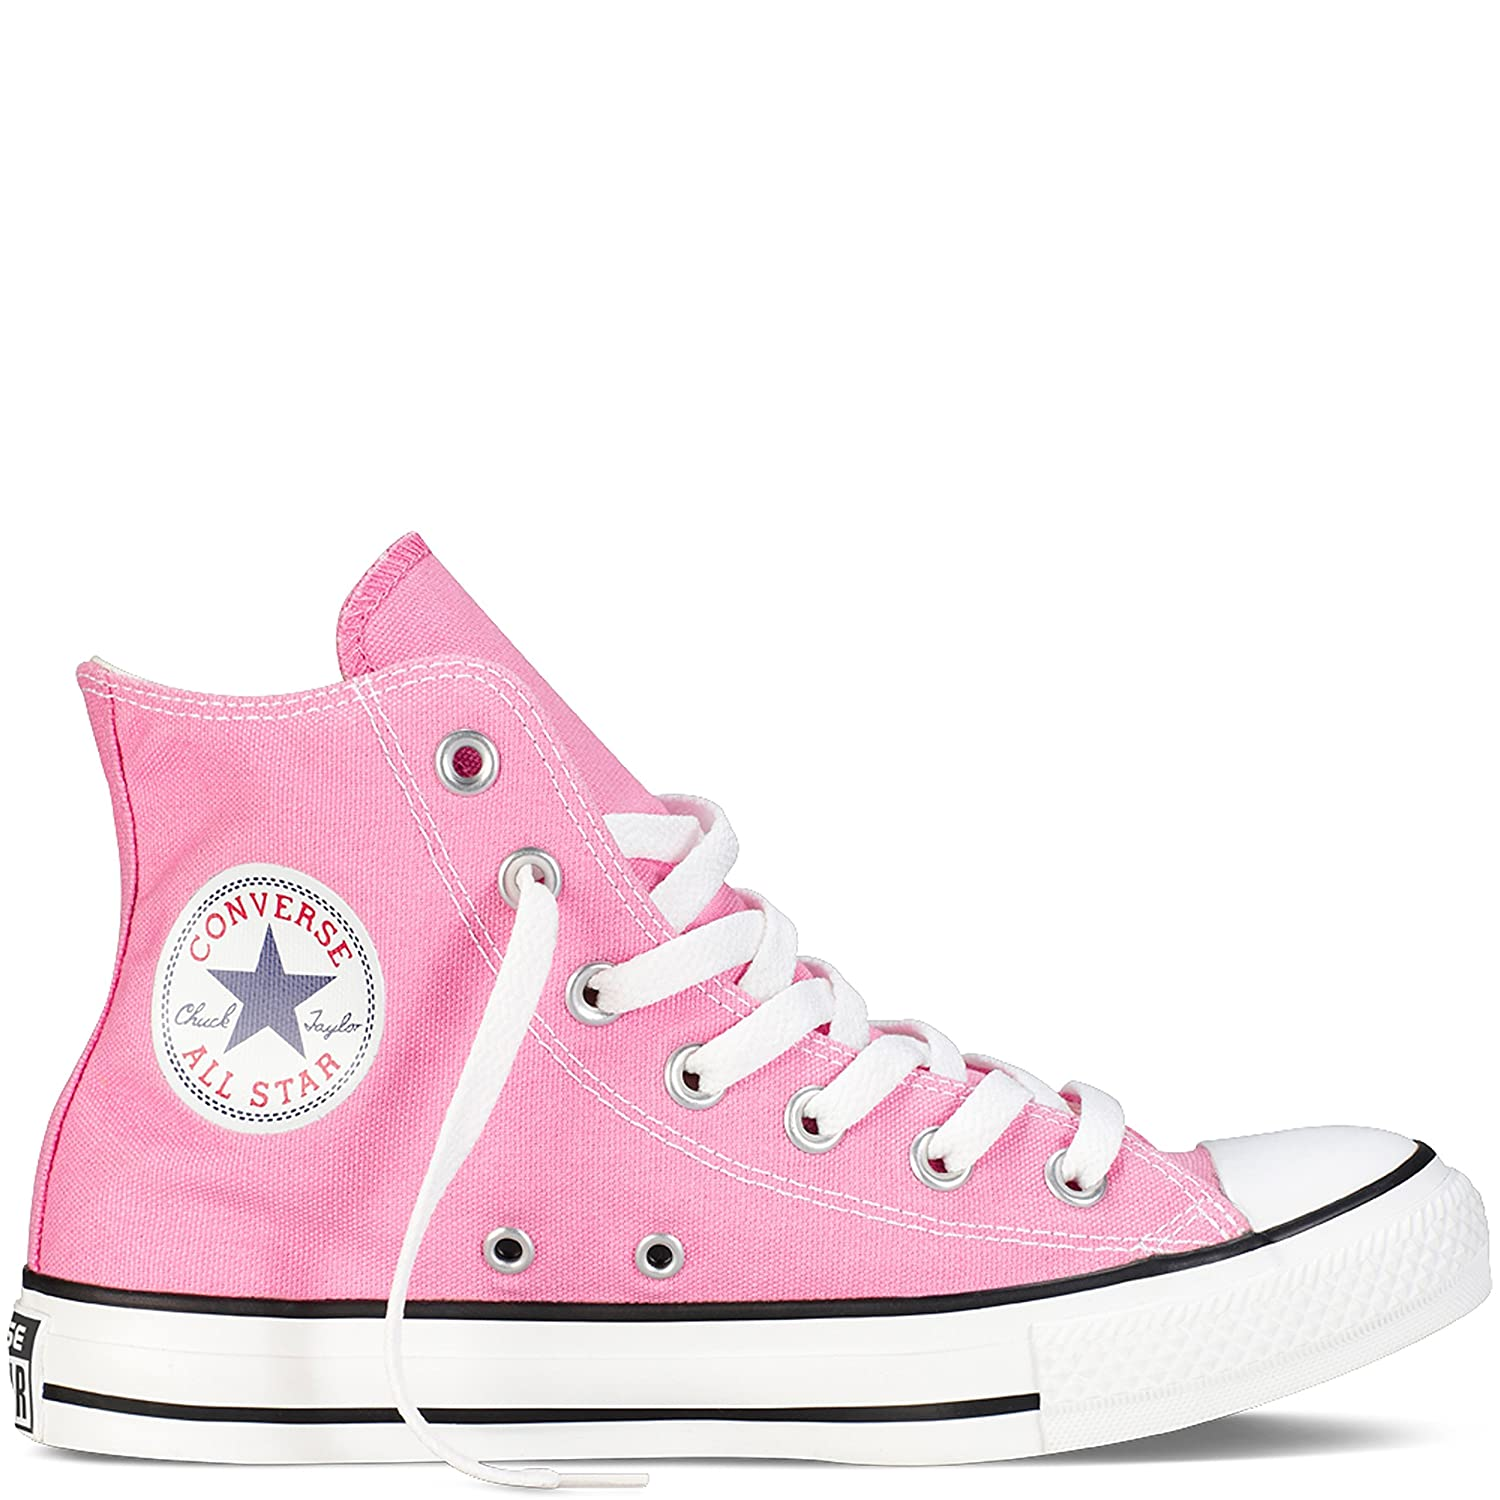 Converse Chuck Chuck Taylor Etoiles Low Top Sneakers B002WQ01F4 Sneaker Mode I3 Rose (Rose TR I3 19) ef094a8 - shopssong.space